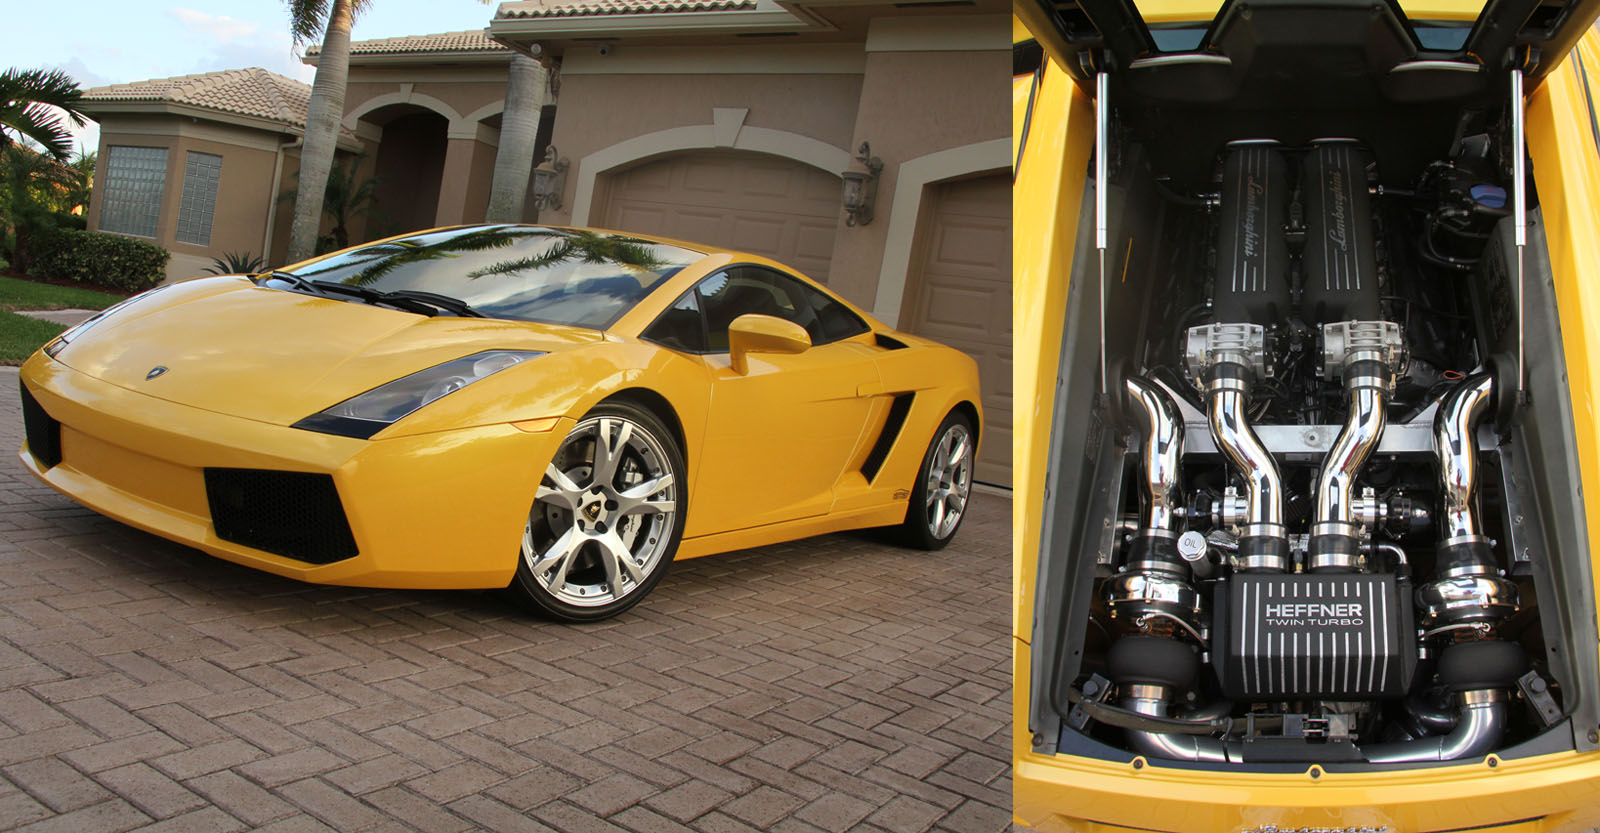 2006 Lamborghini Gallardo Twin Turbo Heffner 800TT